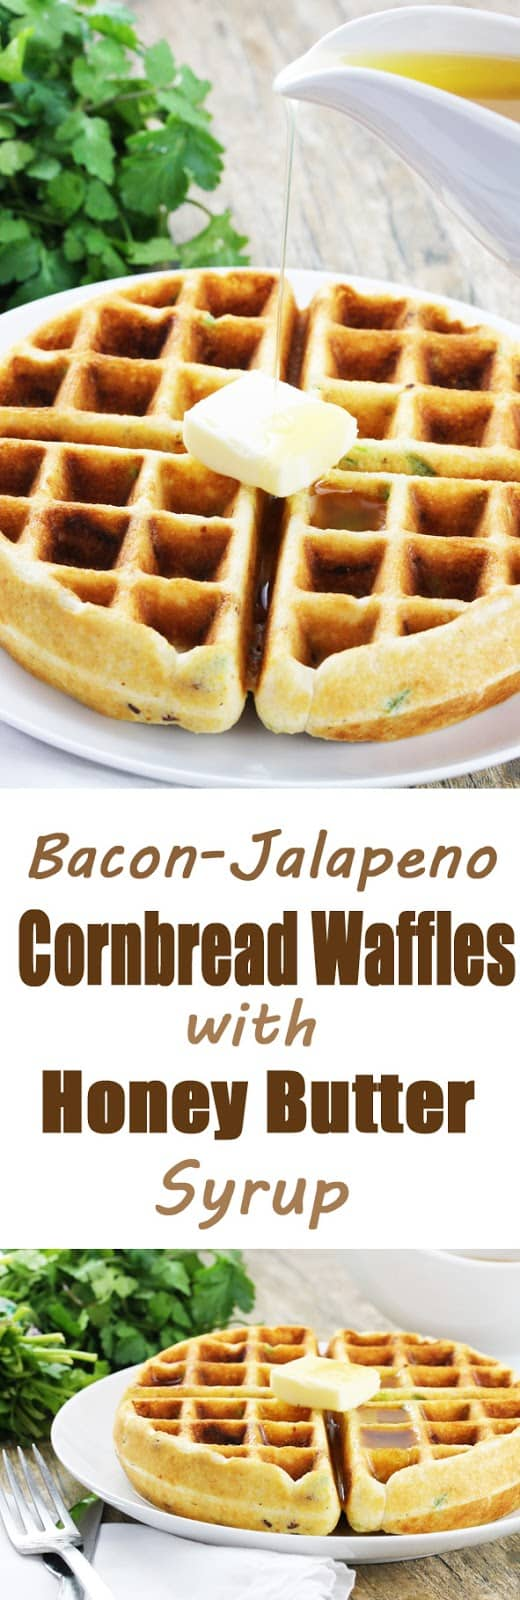 Bacon-Jalapeno Cornbread Waffles with Honey Butter Syrup